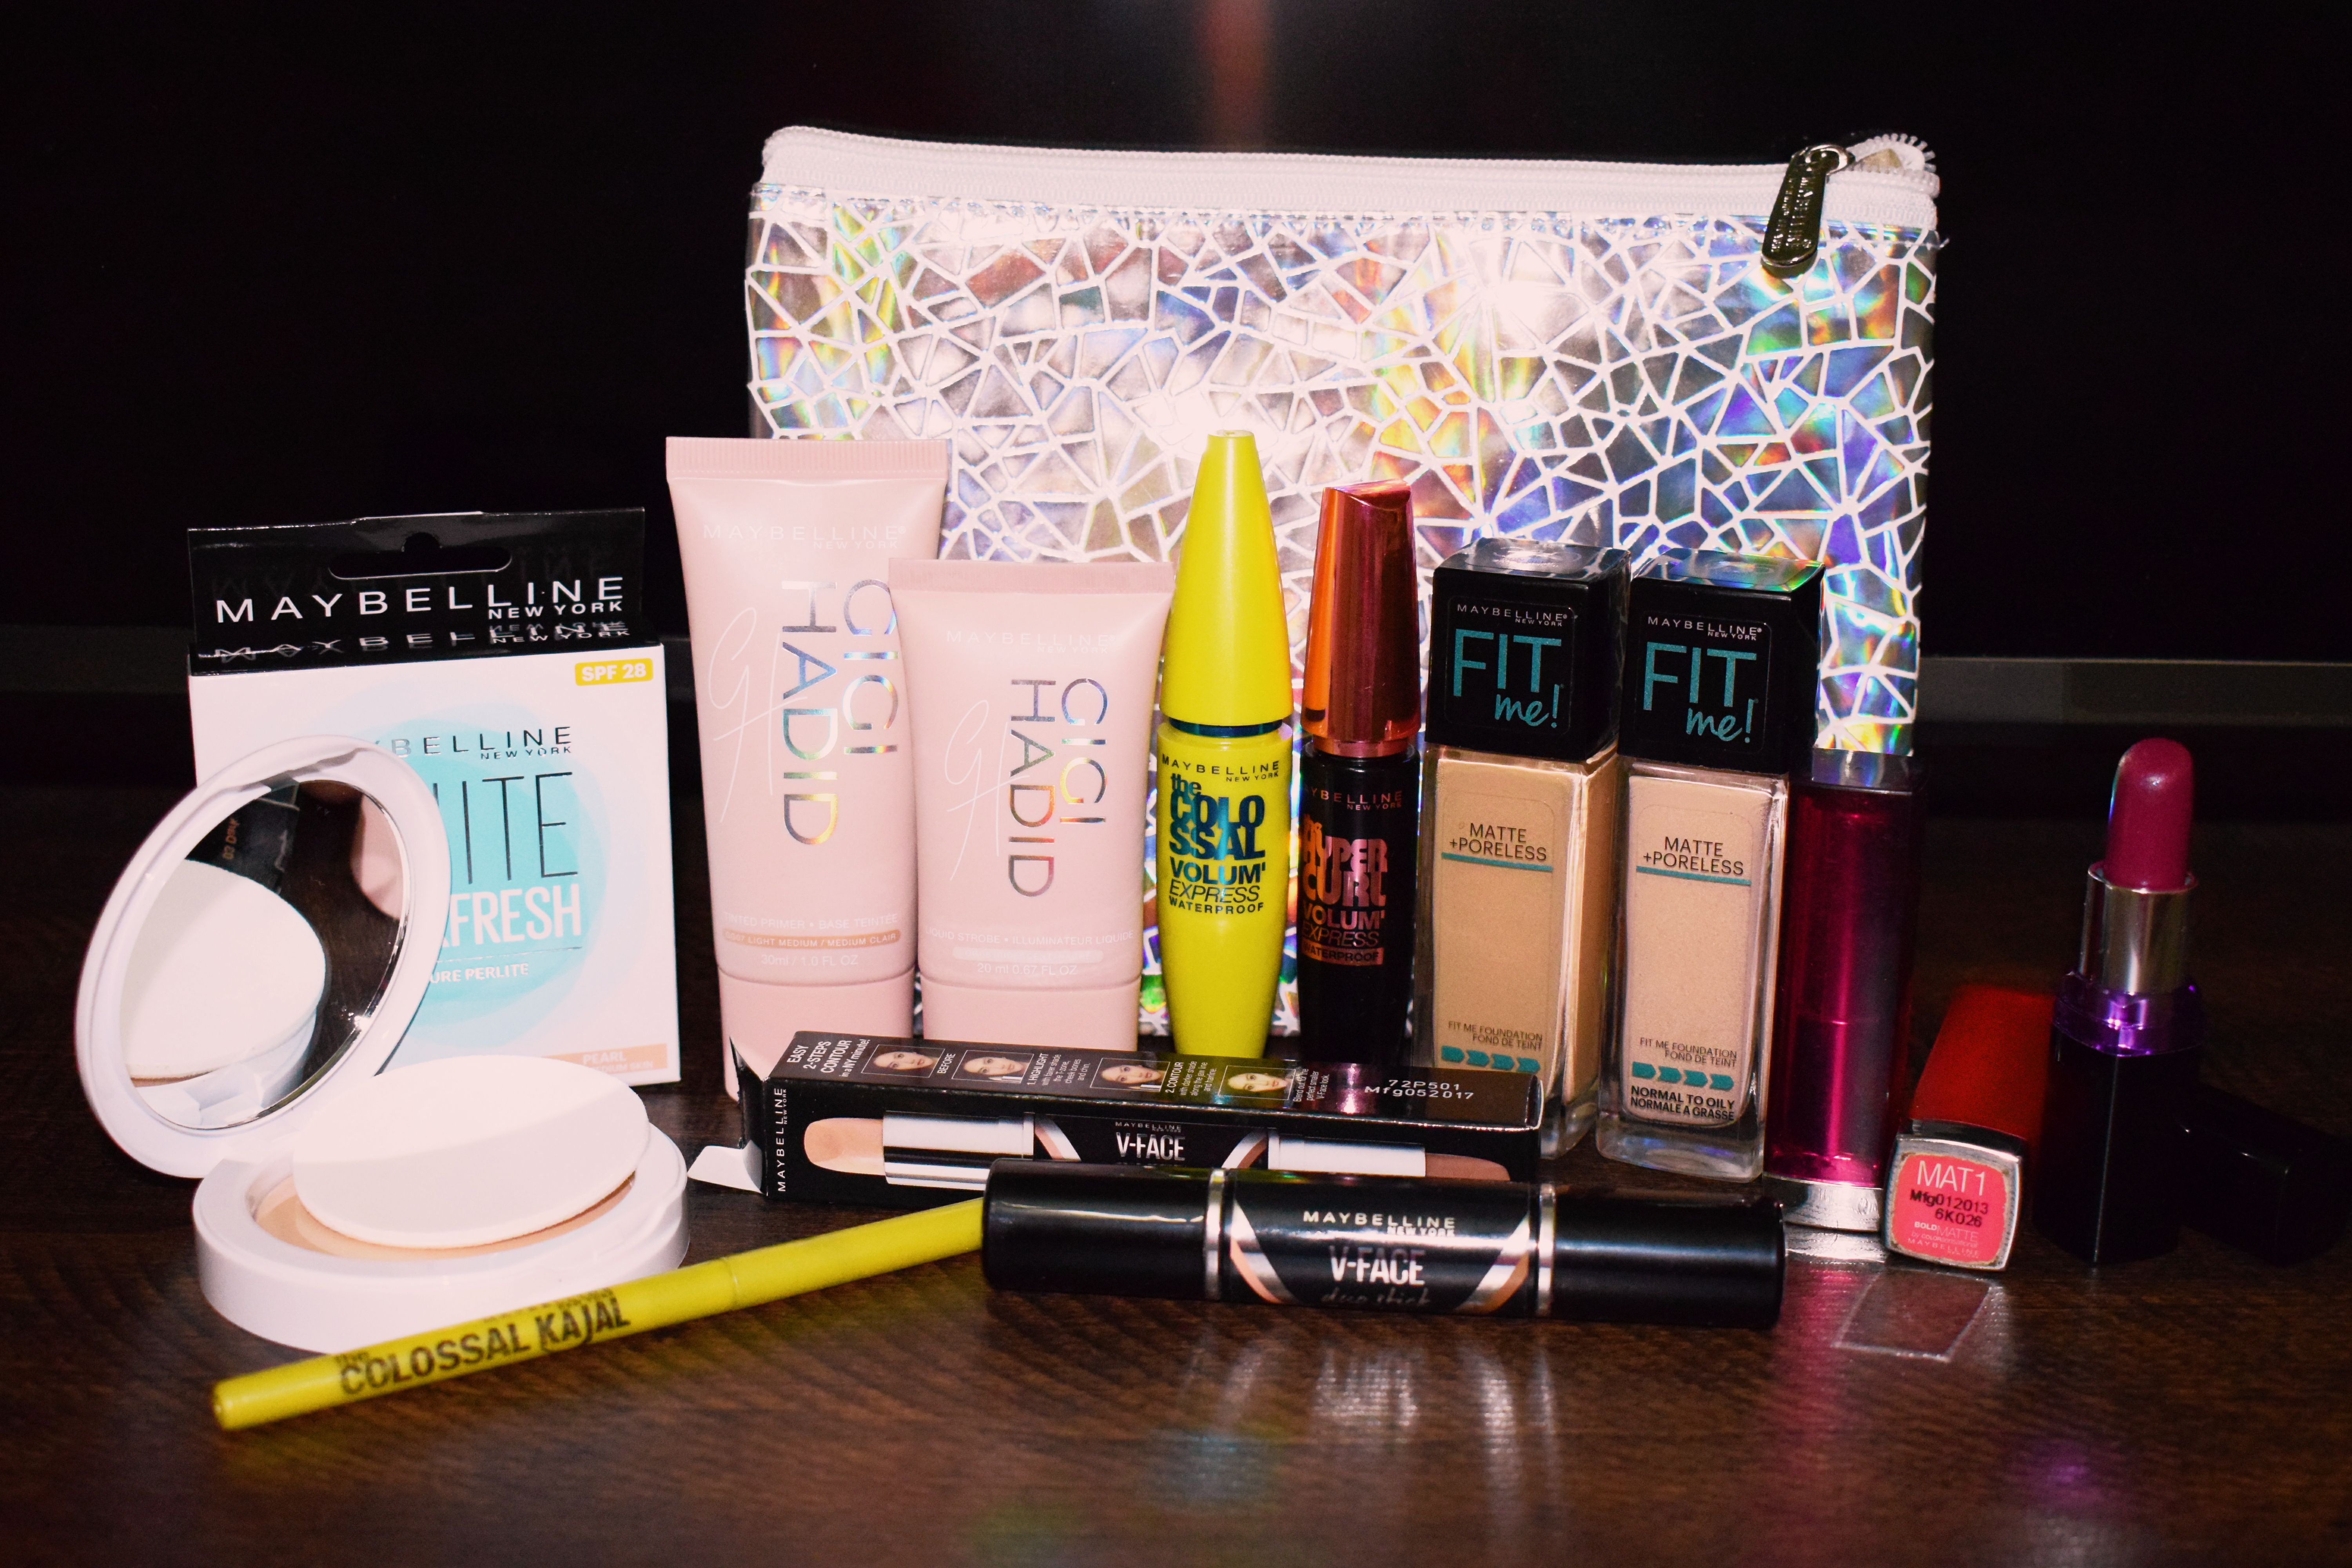 Maybelline New York makeup products (With images